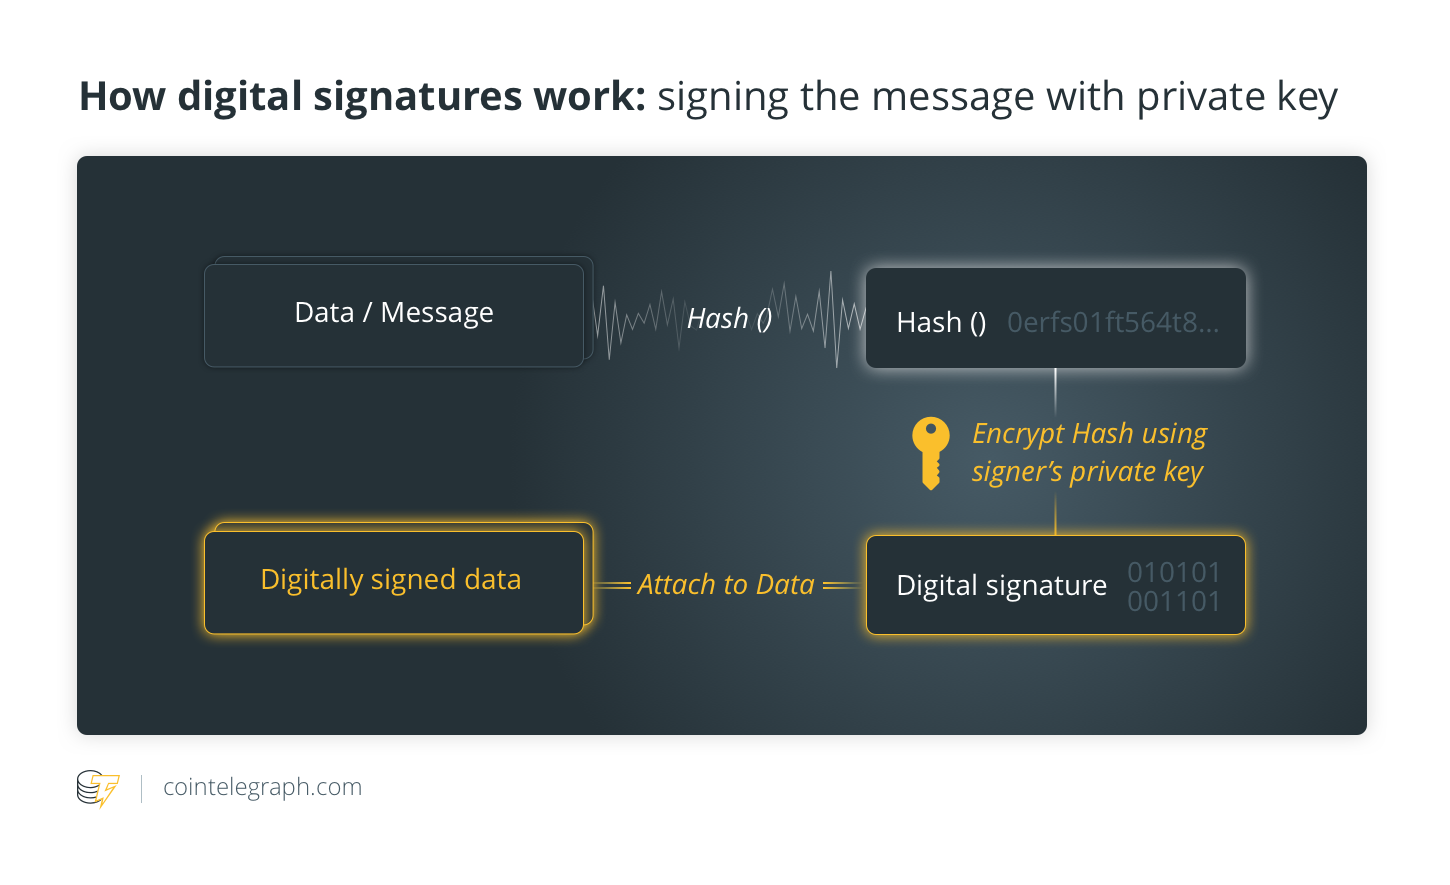 signing the message with private key